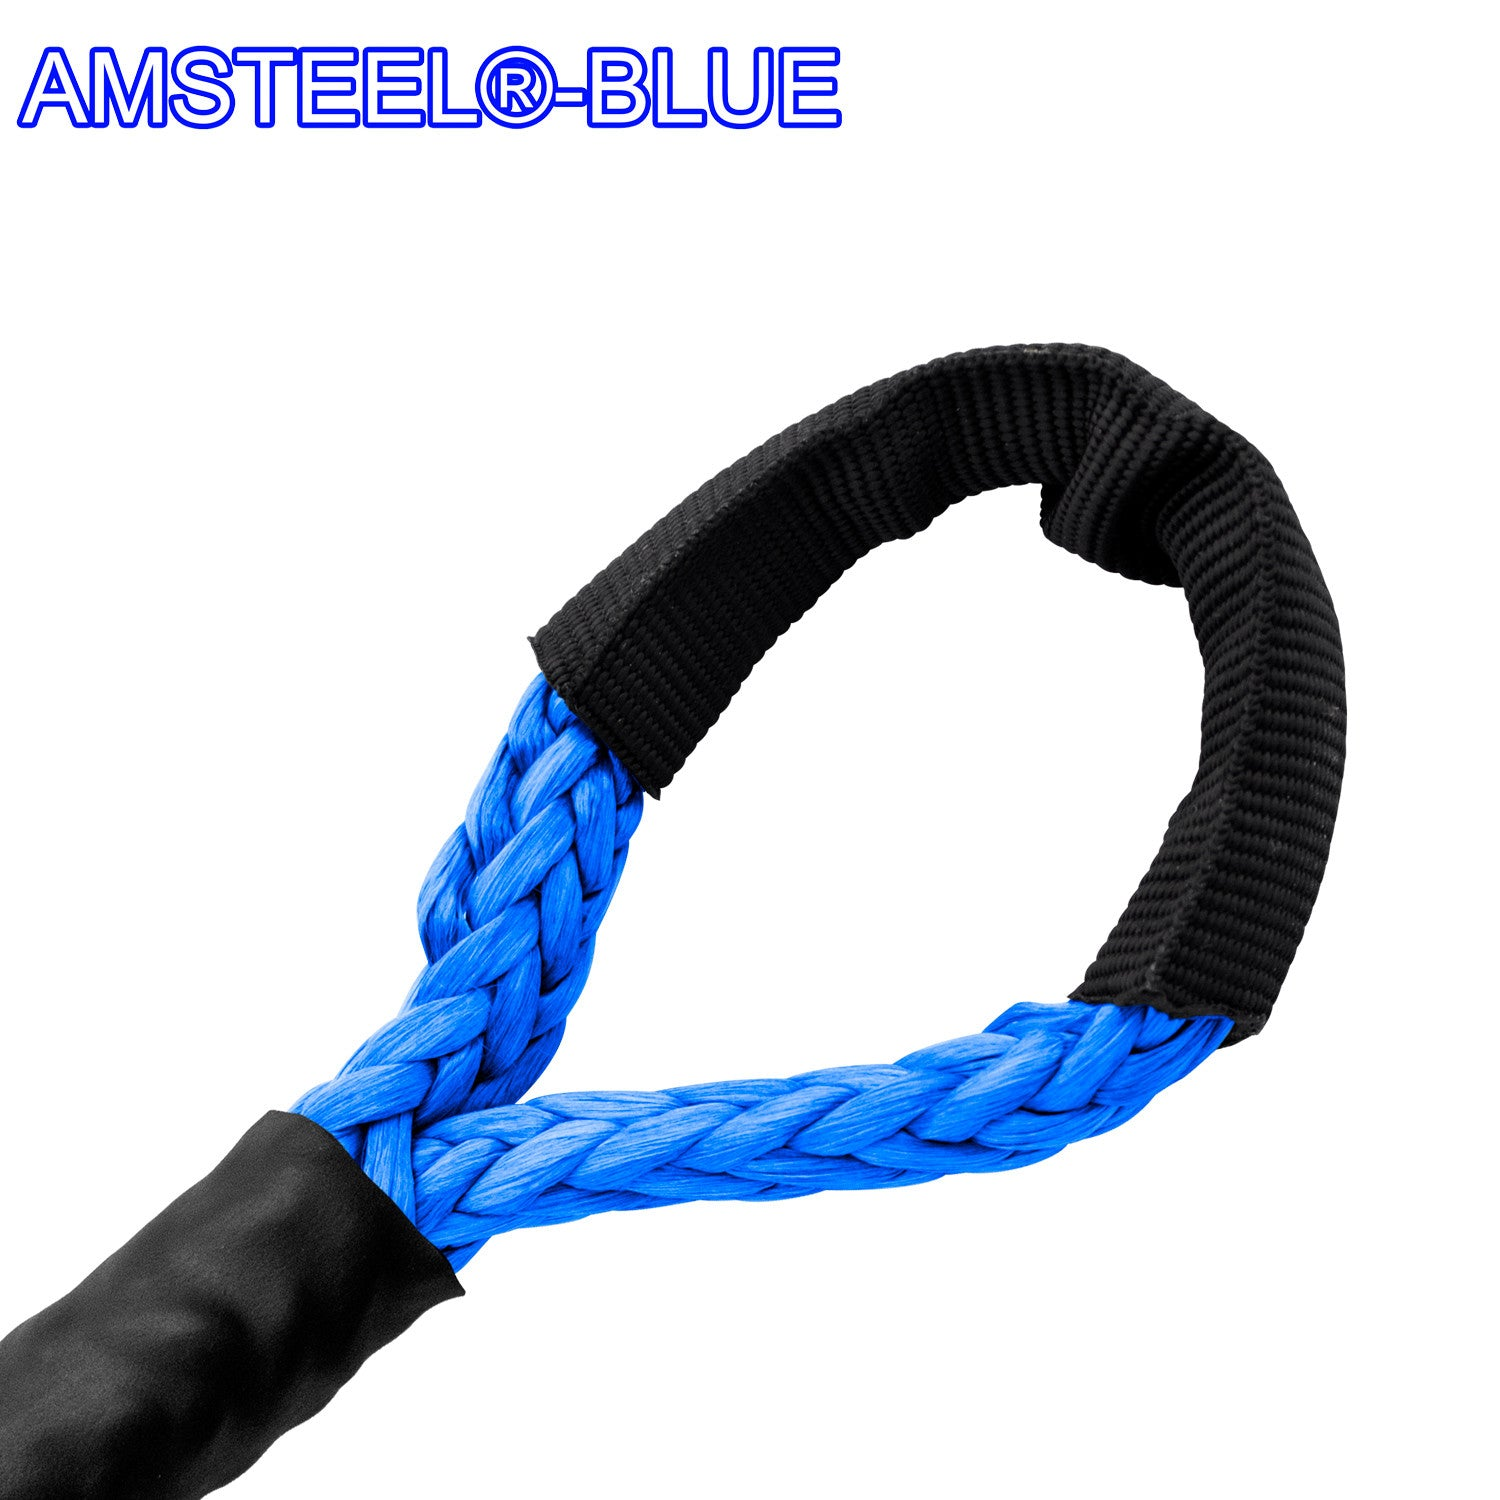 5/16 x 35 foot Main Line Winch Rope - AmSteel®Blue